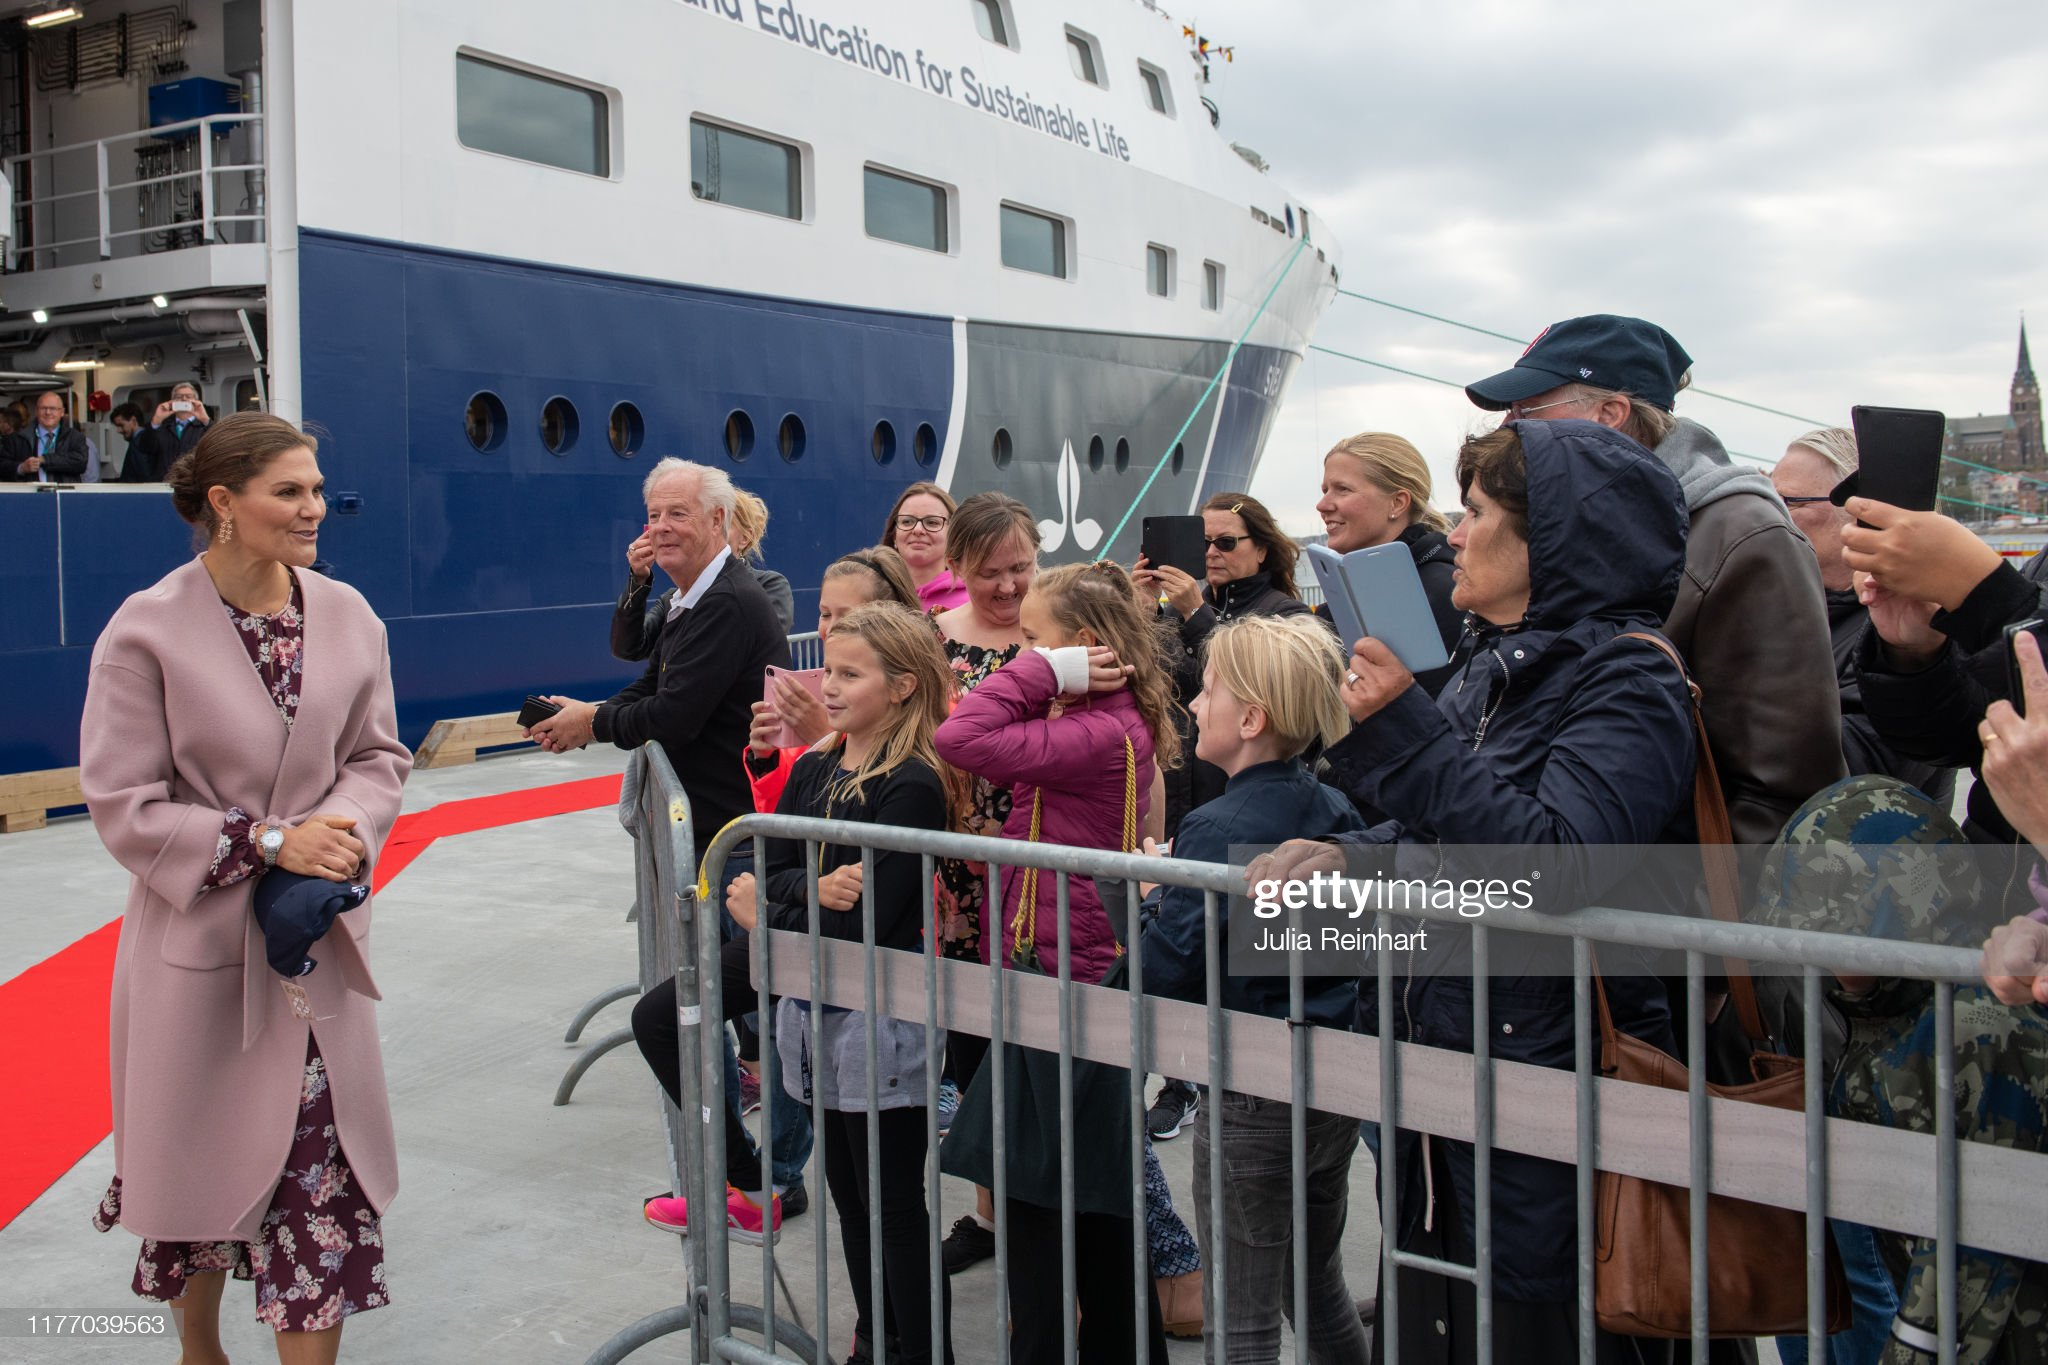 crown-princess-victoria-greets-onlookers-at-the-end-of-her-visit-of-picture-id1177039563